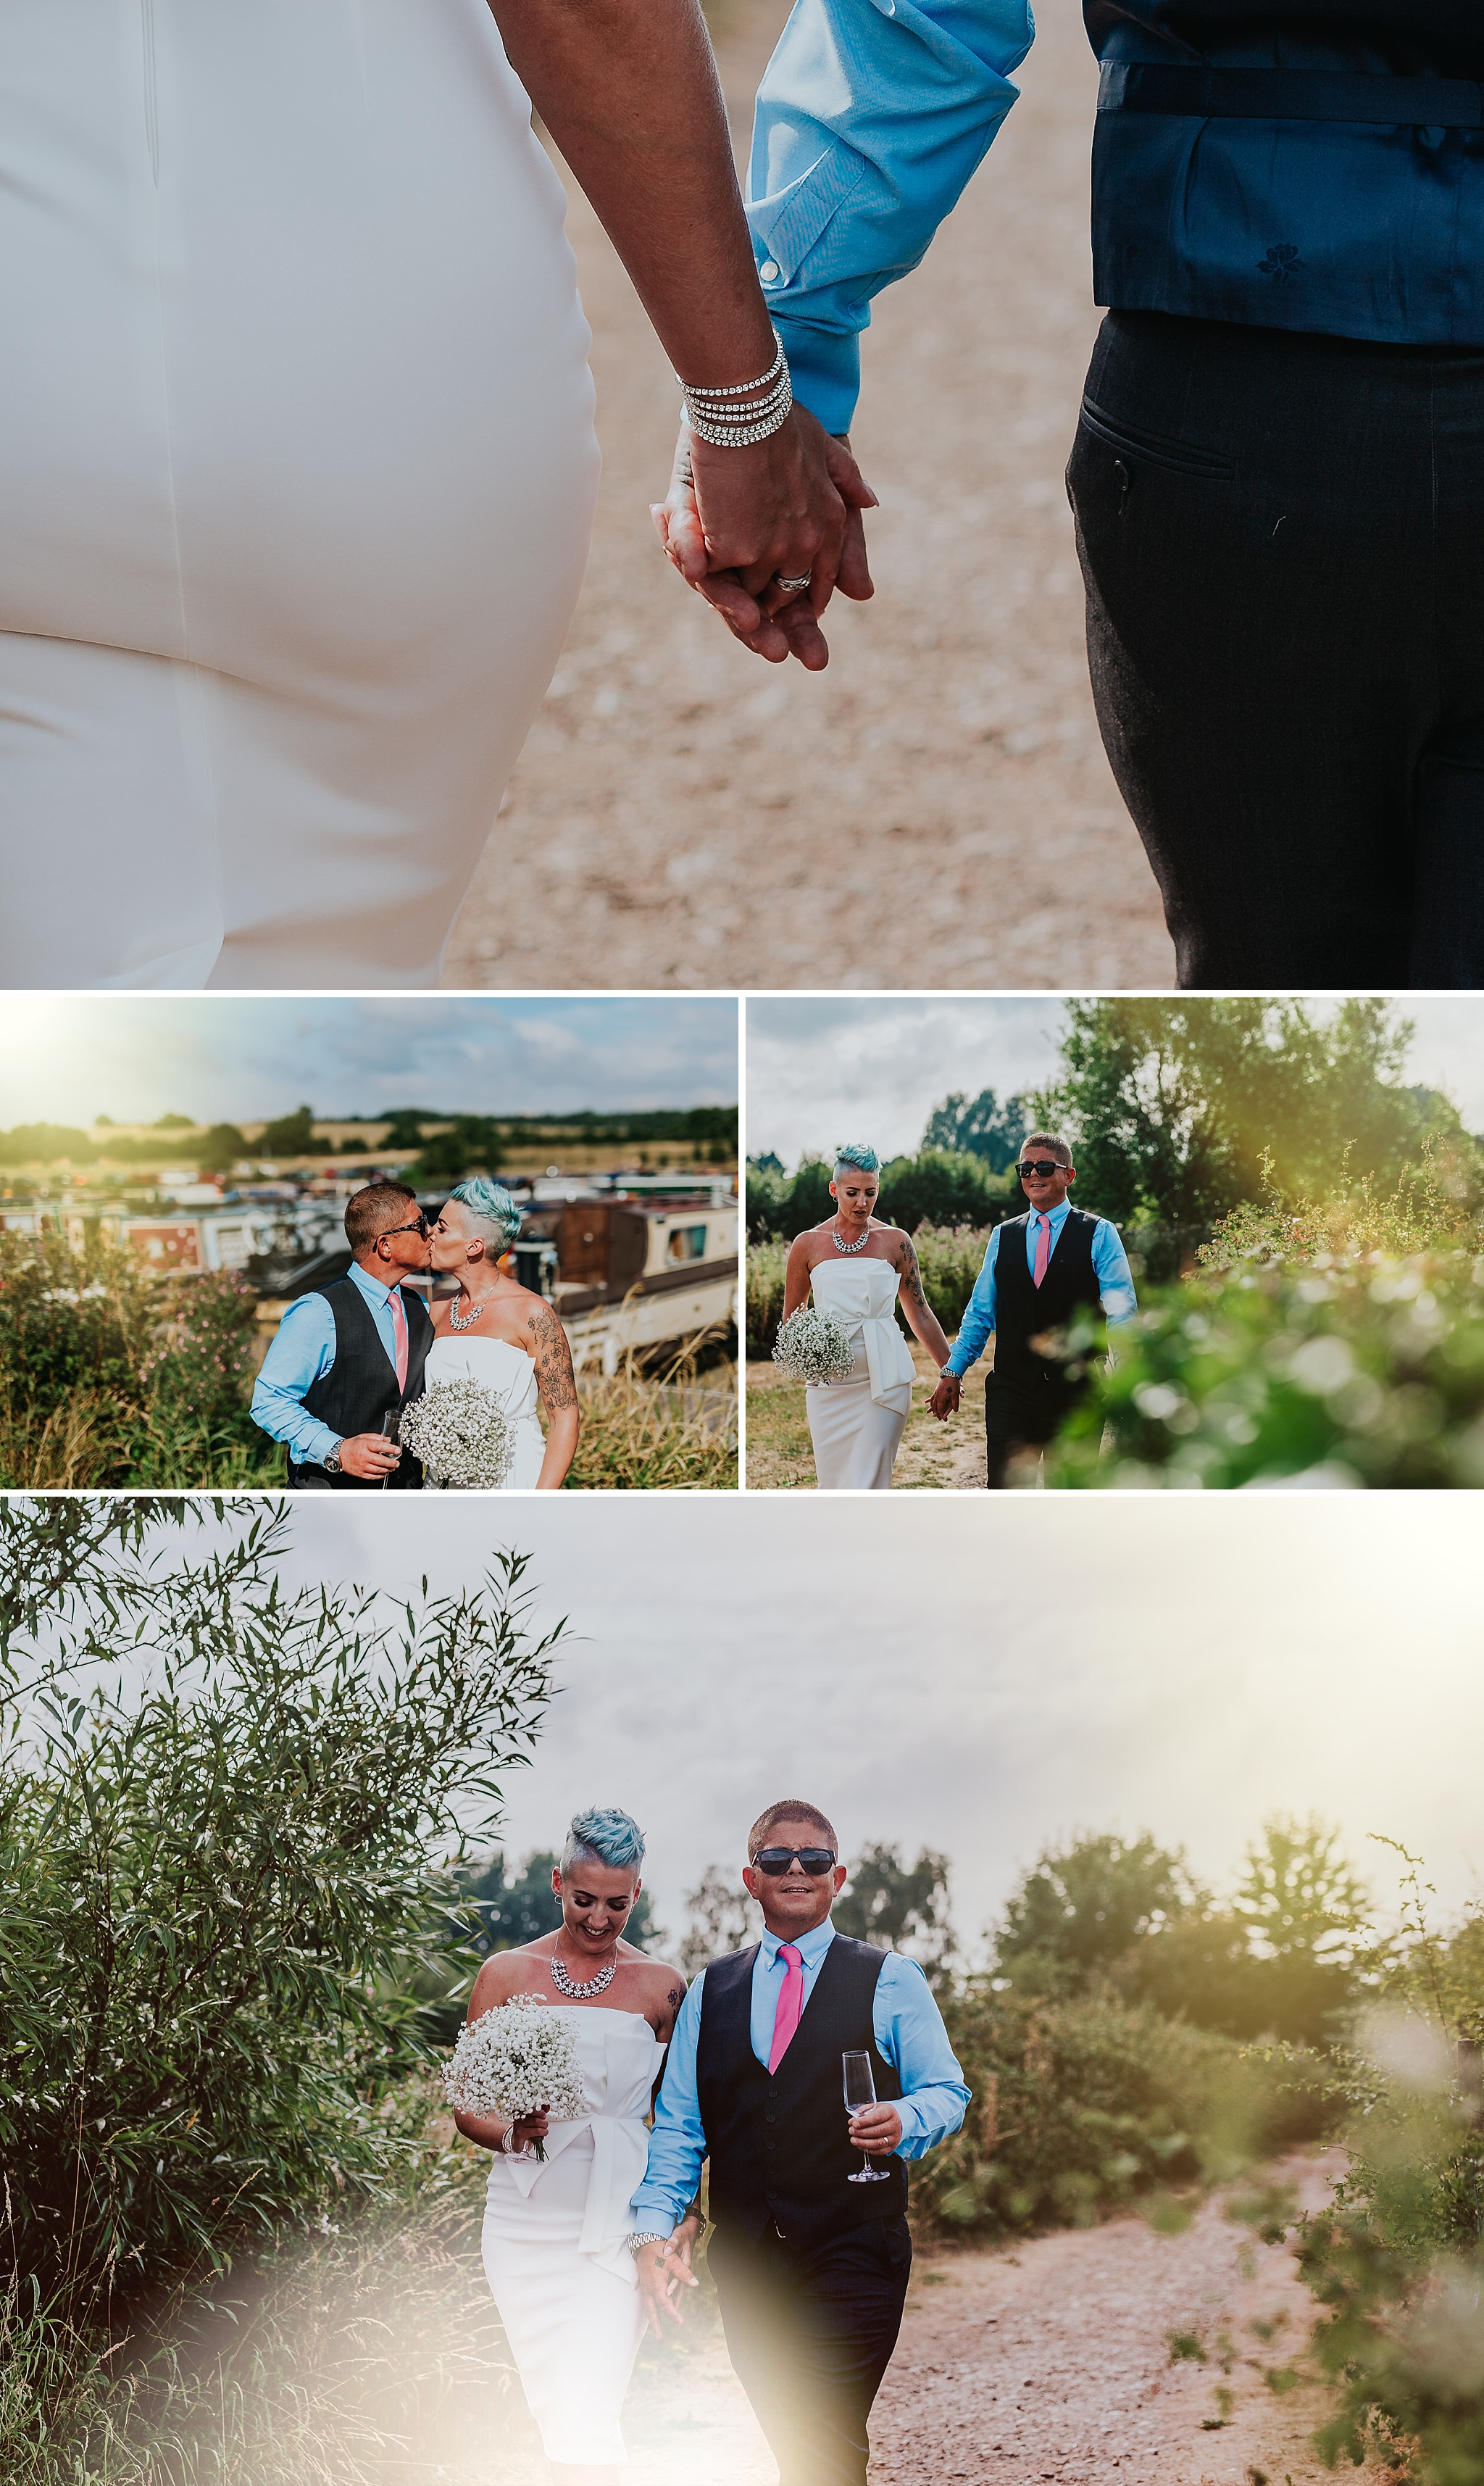 Wedding photographer Staffordshire, West Midlands